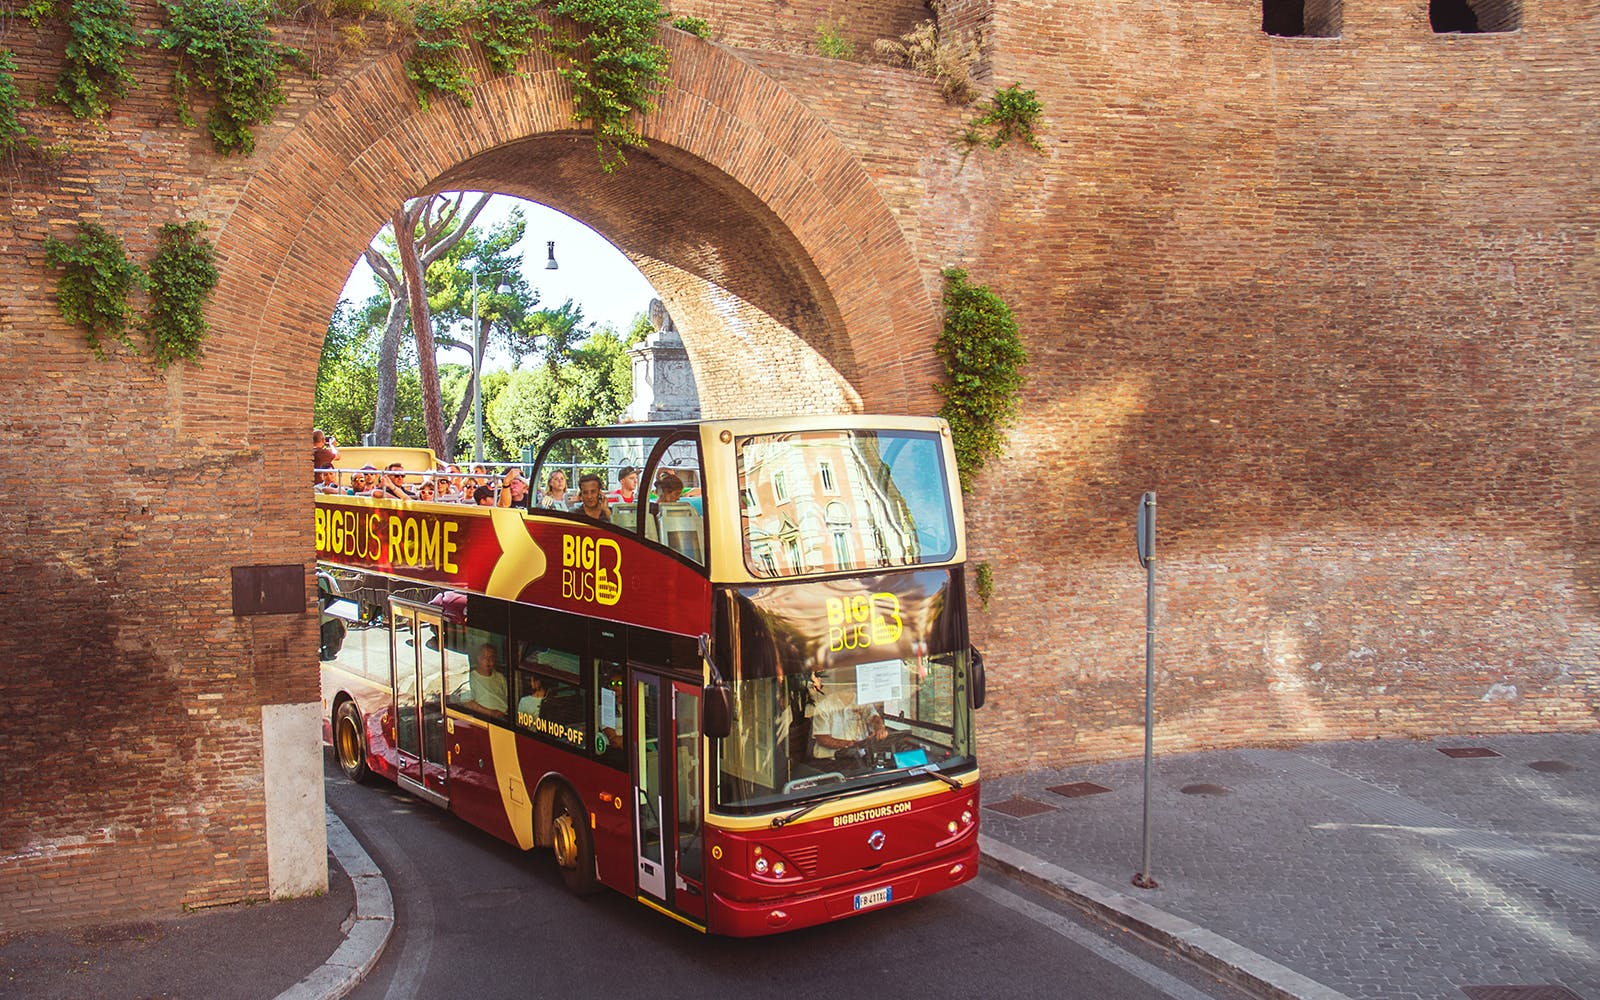 big bus: 3 day hop-on hop-off bus tour with free walking tours-1